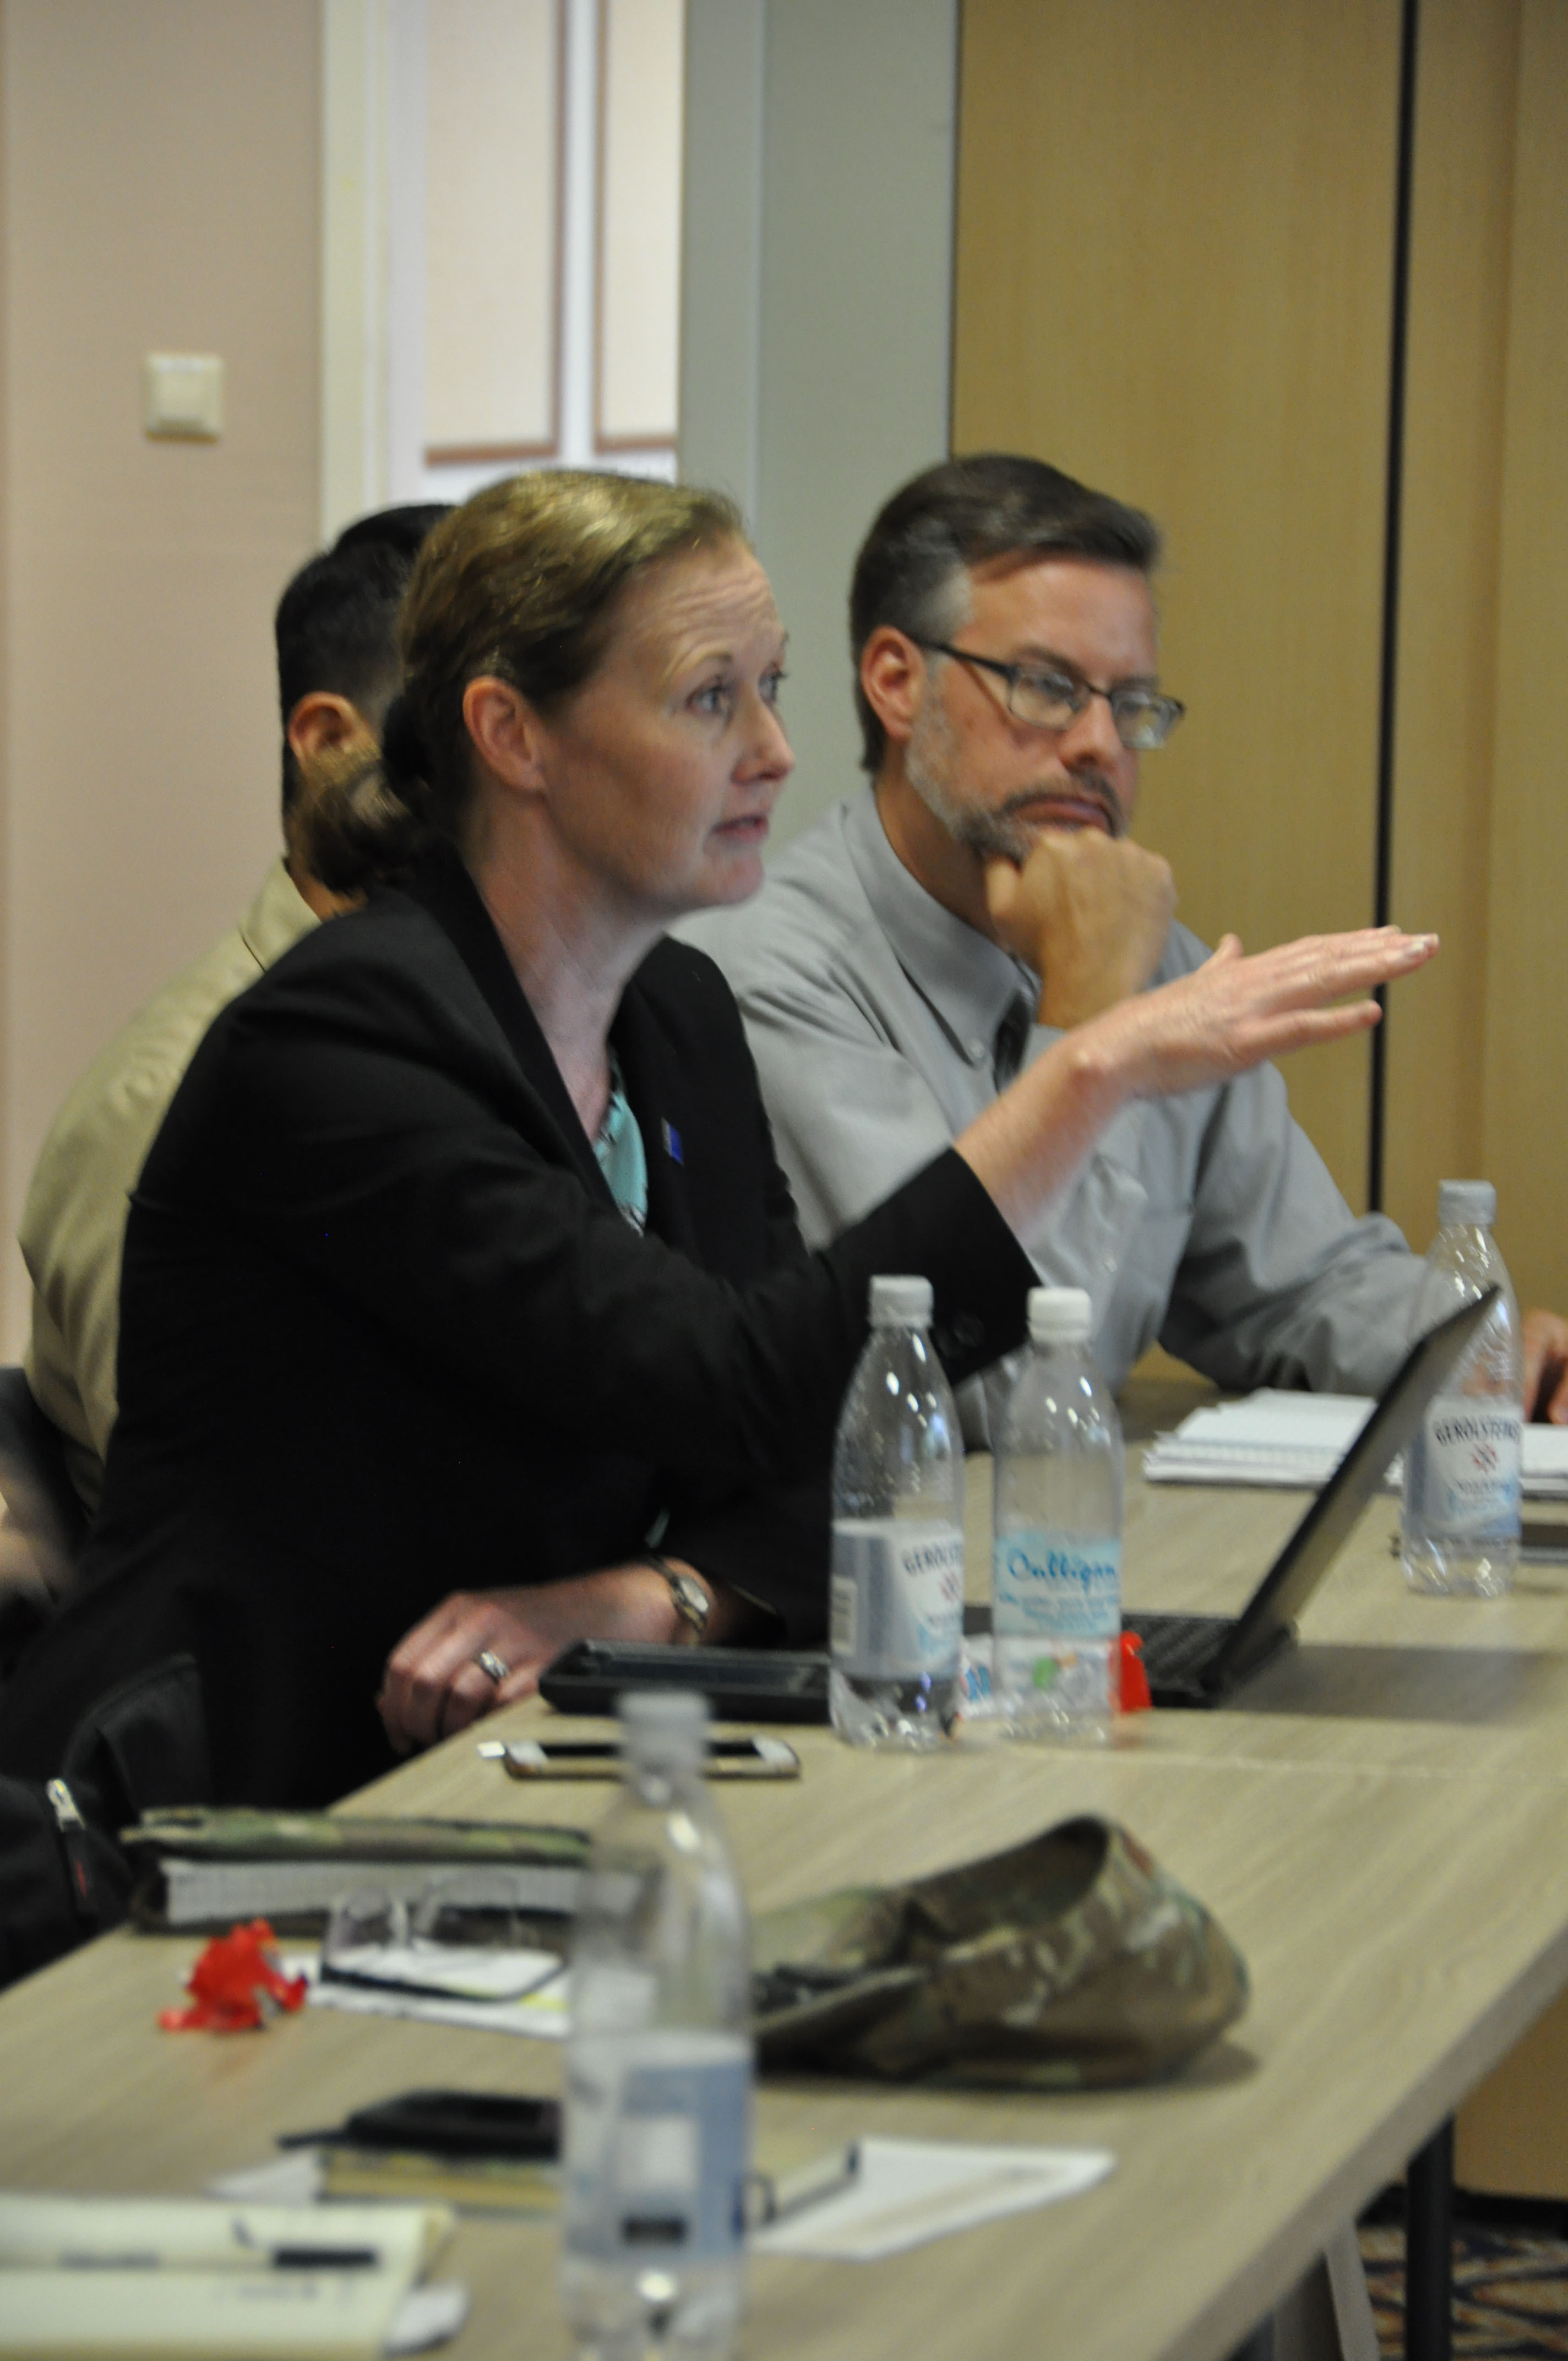 Maureen Bartee, associate director for Global Health Security, Center for Global Health, Centers for Disease Control and Prevention, shares information during a group discussion at the Infectious Disease Strategic Planning Workshop on Patch Barracks in Stuttgart, Germany, Sept. 6, 2019. The CDC was one of several U.S. government organizations in attendance during the three day event where they discussed AFRICOM's intermediate objective for the AFRICOM Theater Campaign Plan. With suggestions from the interagencies, Bartree said they then walked through how AFRICOM can achieve their goals. (U.S. Air Force photo by Master Sgt. Megan Crusher)